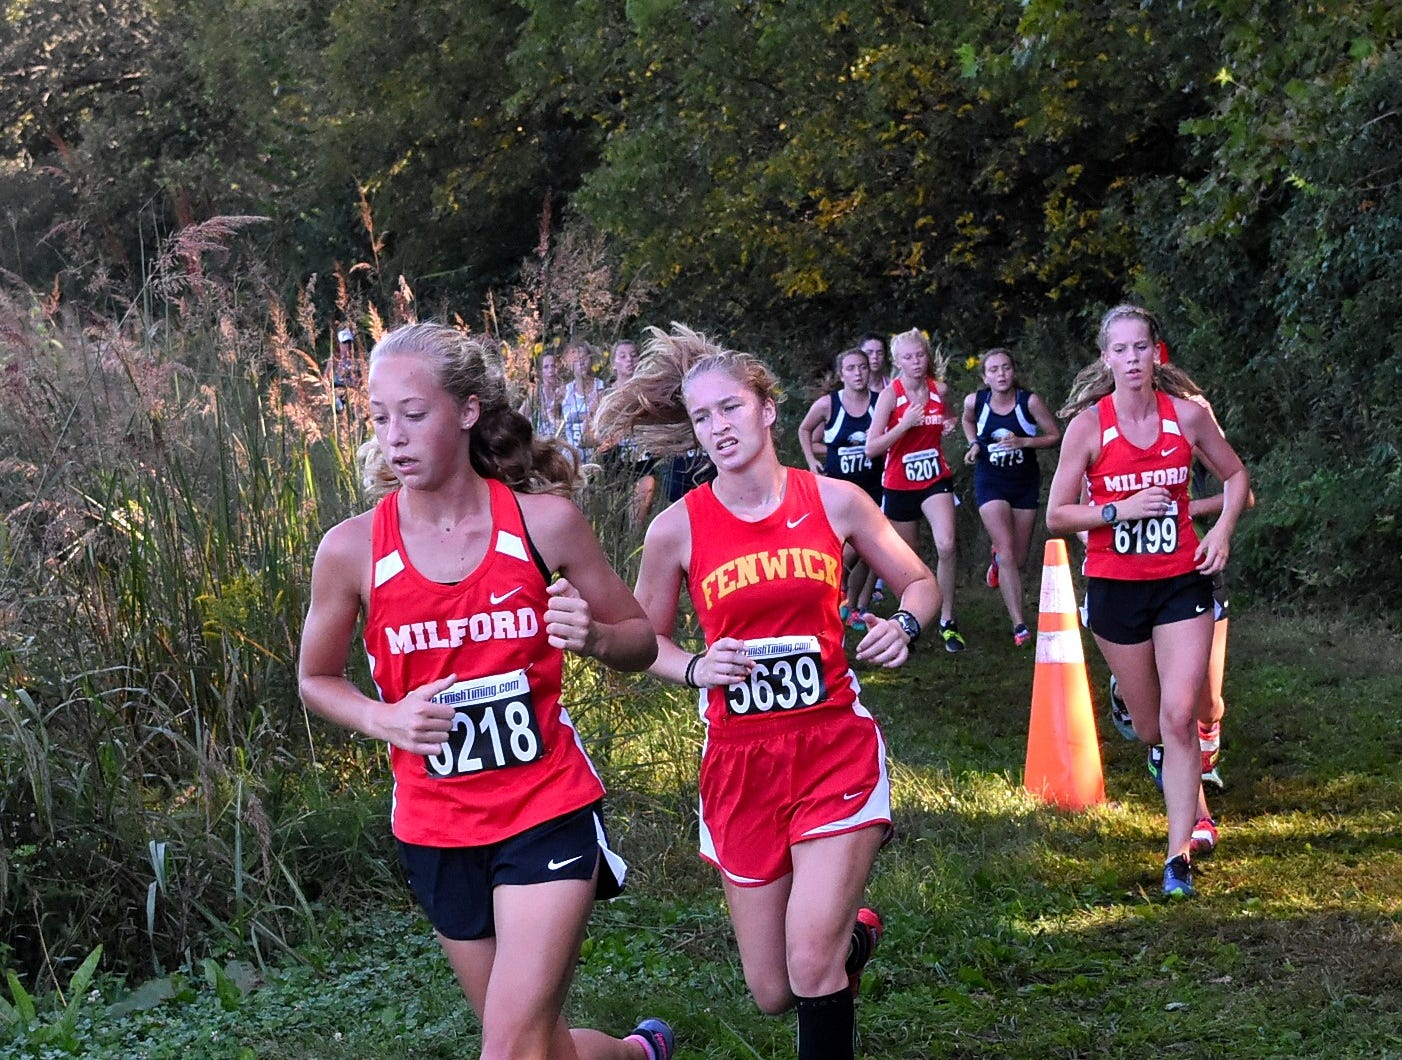 Milford's Emily Rodeffer, Fenwick's Hannah Tebbe and Emma Beck of Milford lead a group of ladies to the half way mark while running at the 2018 Milford Cross Country Invitational, Sept. 15, 2018.